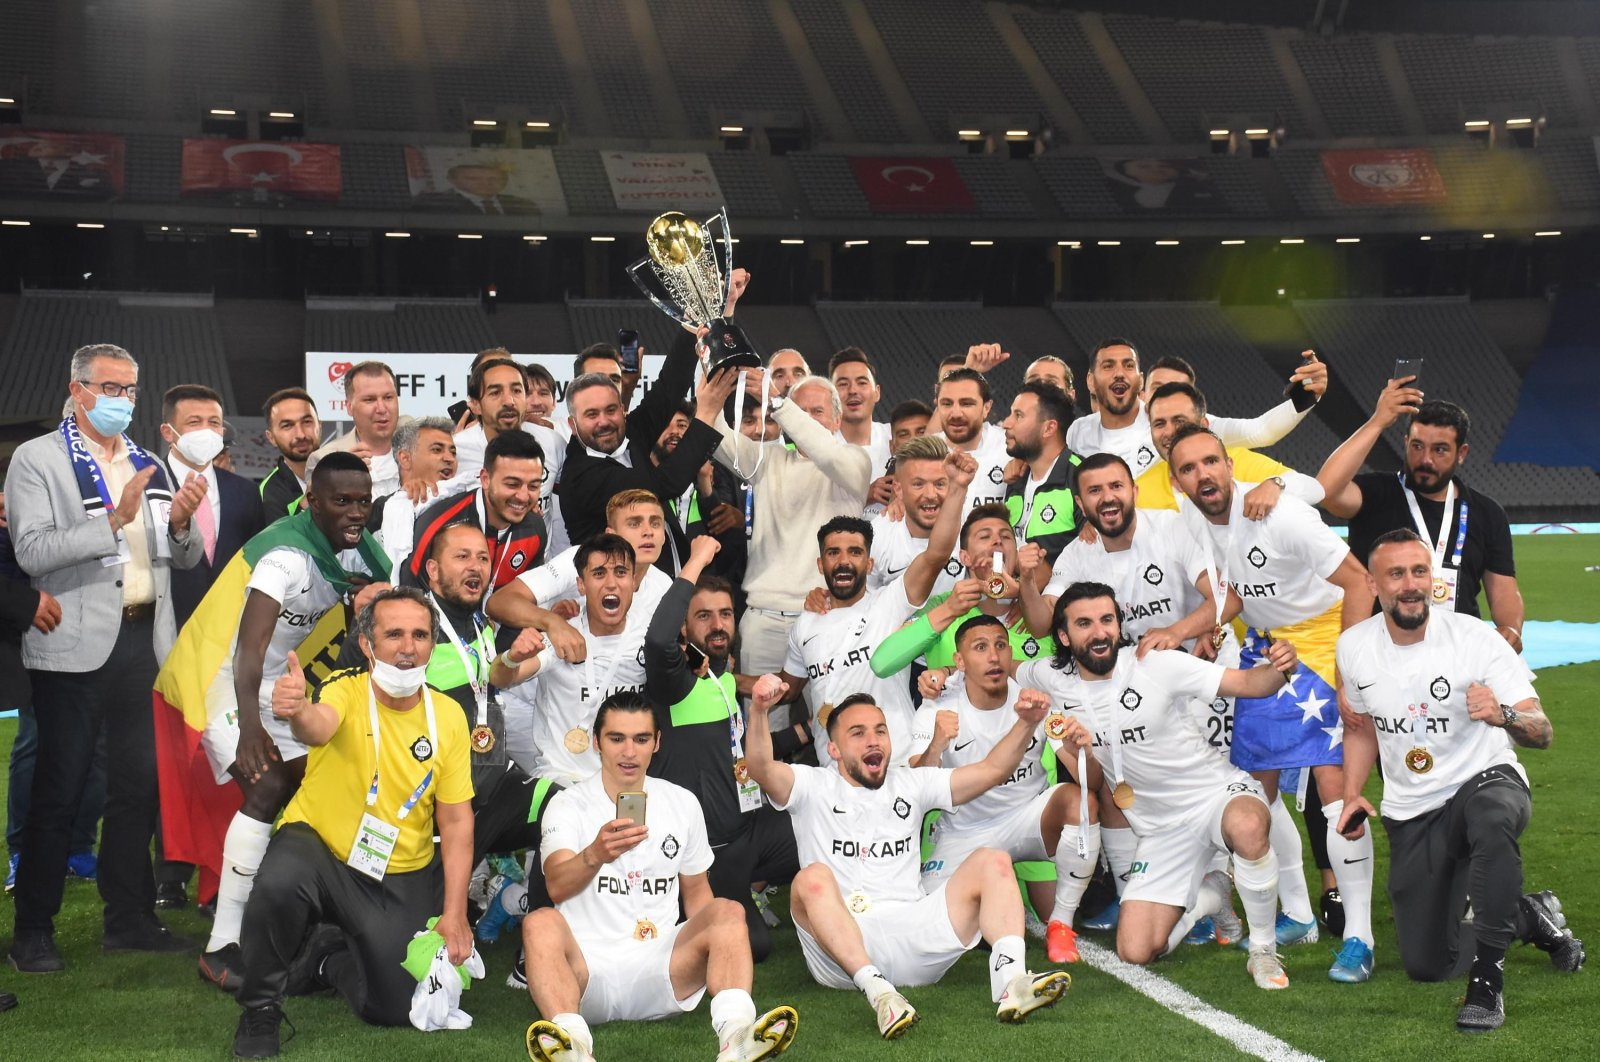 Altay players celebrate with the trophy after securingpromotion to the Turkish Süper at the Atatürk Olympic Stadium in Istanbul, Turkey, May 26, 2021. (DHA Photo)